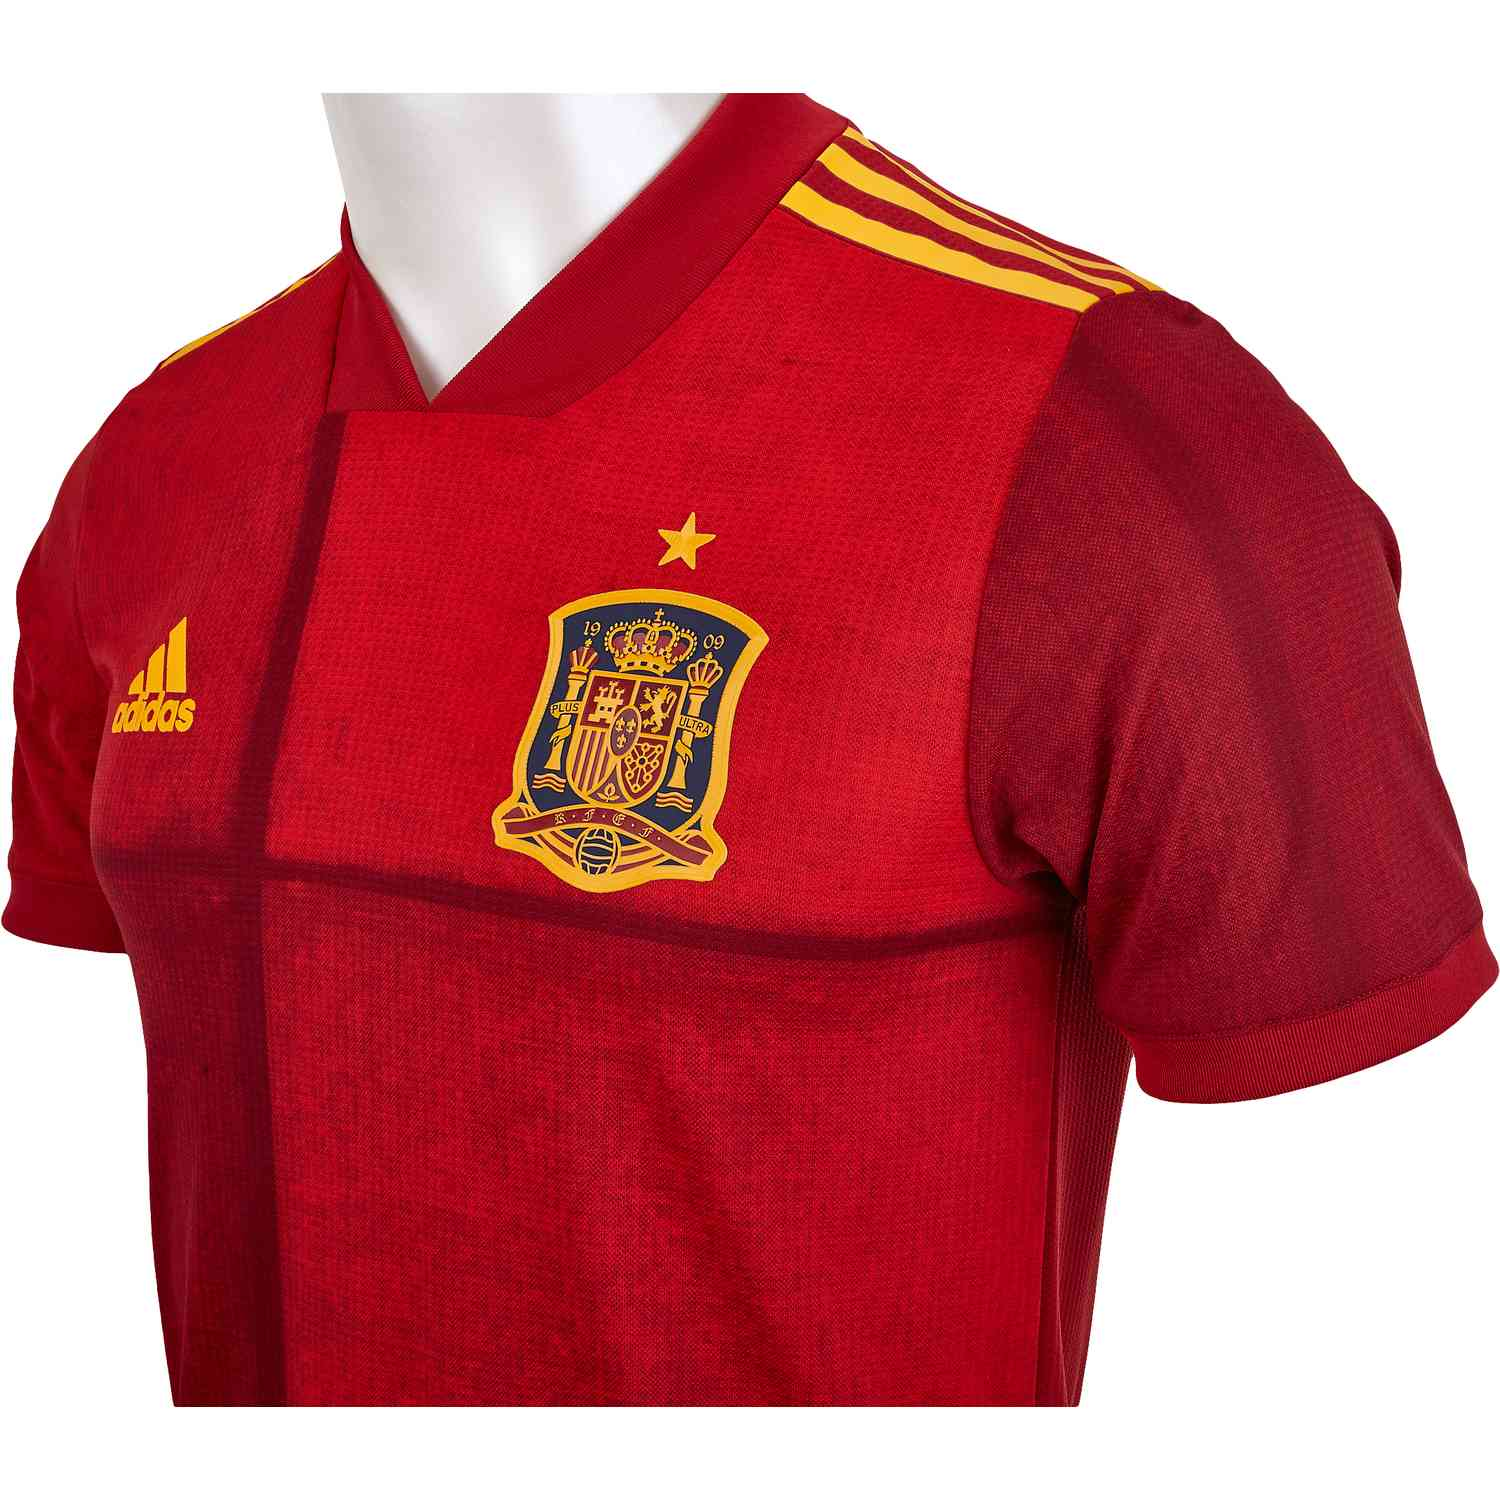 2020 adidas Spain Home Authentic Jersey - SoccerPro